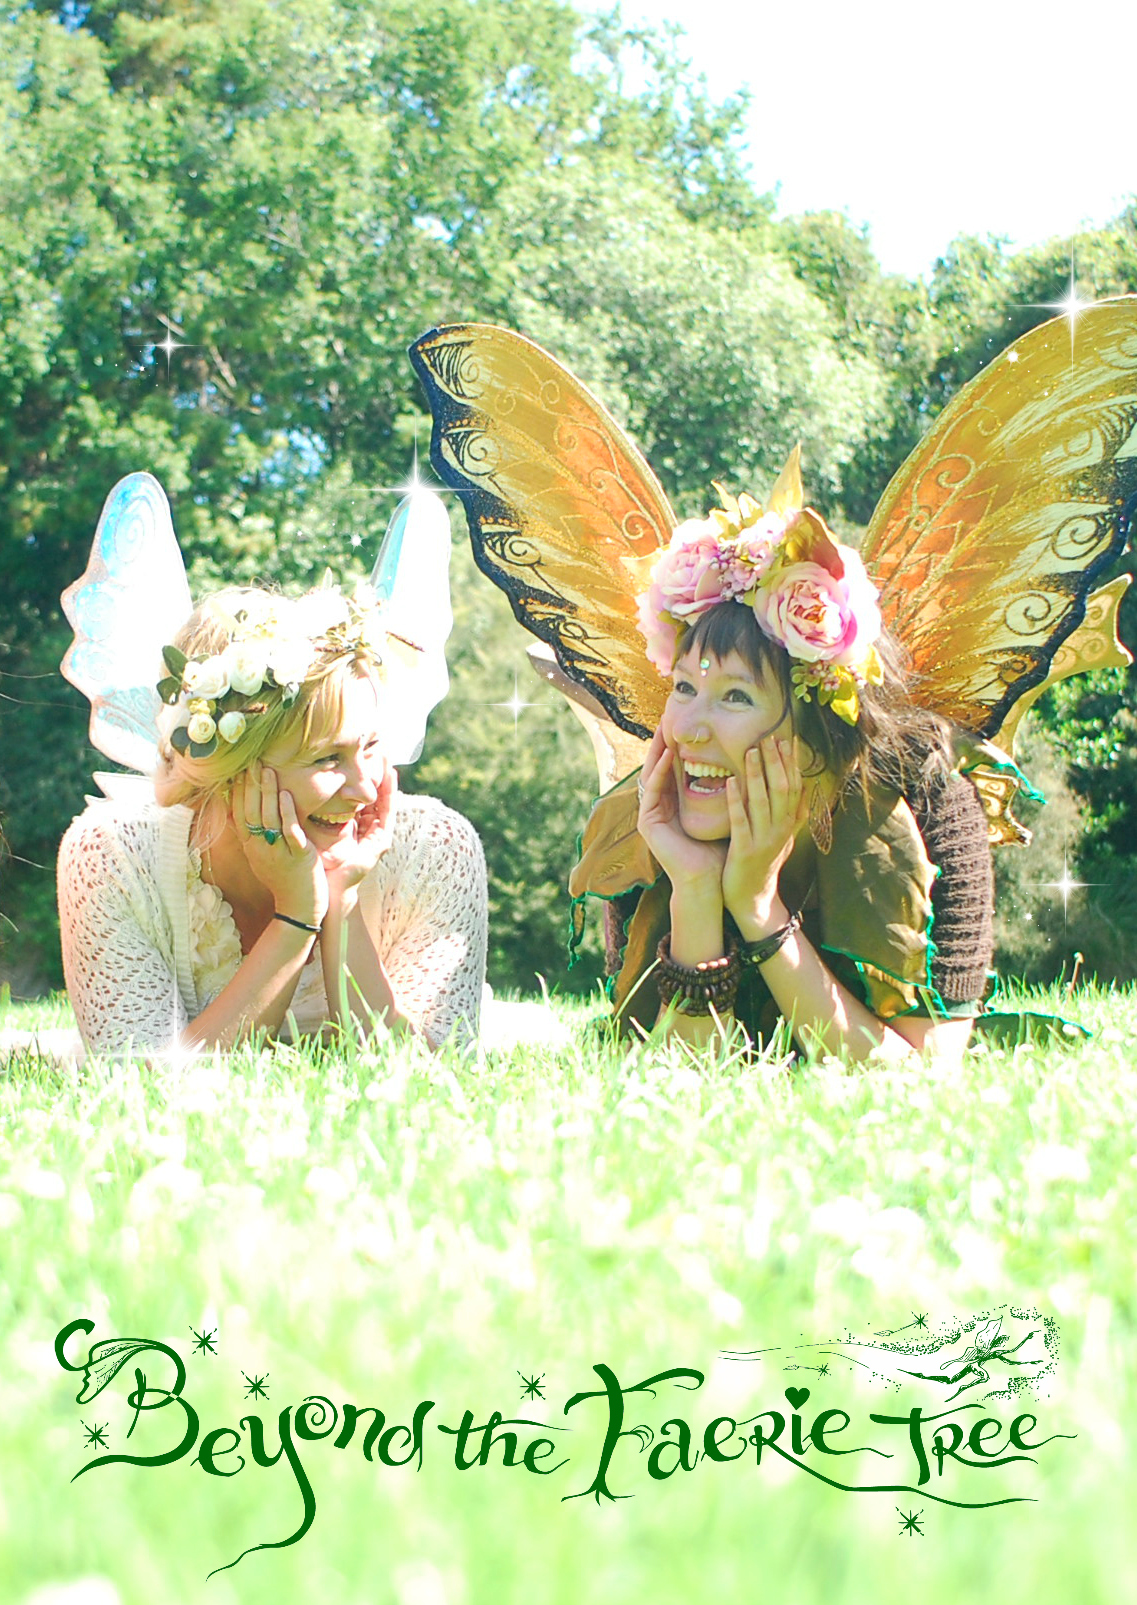 Beyond the Faerie Tree